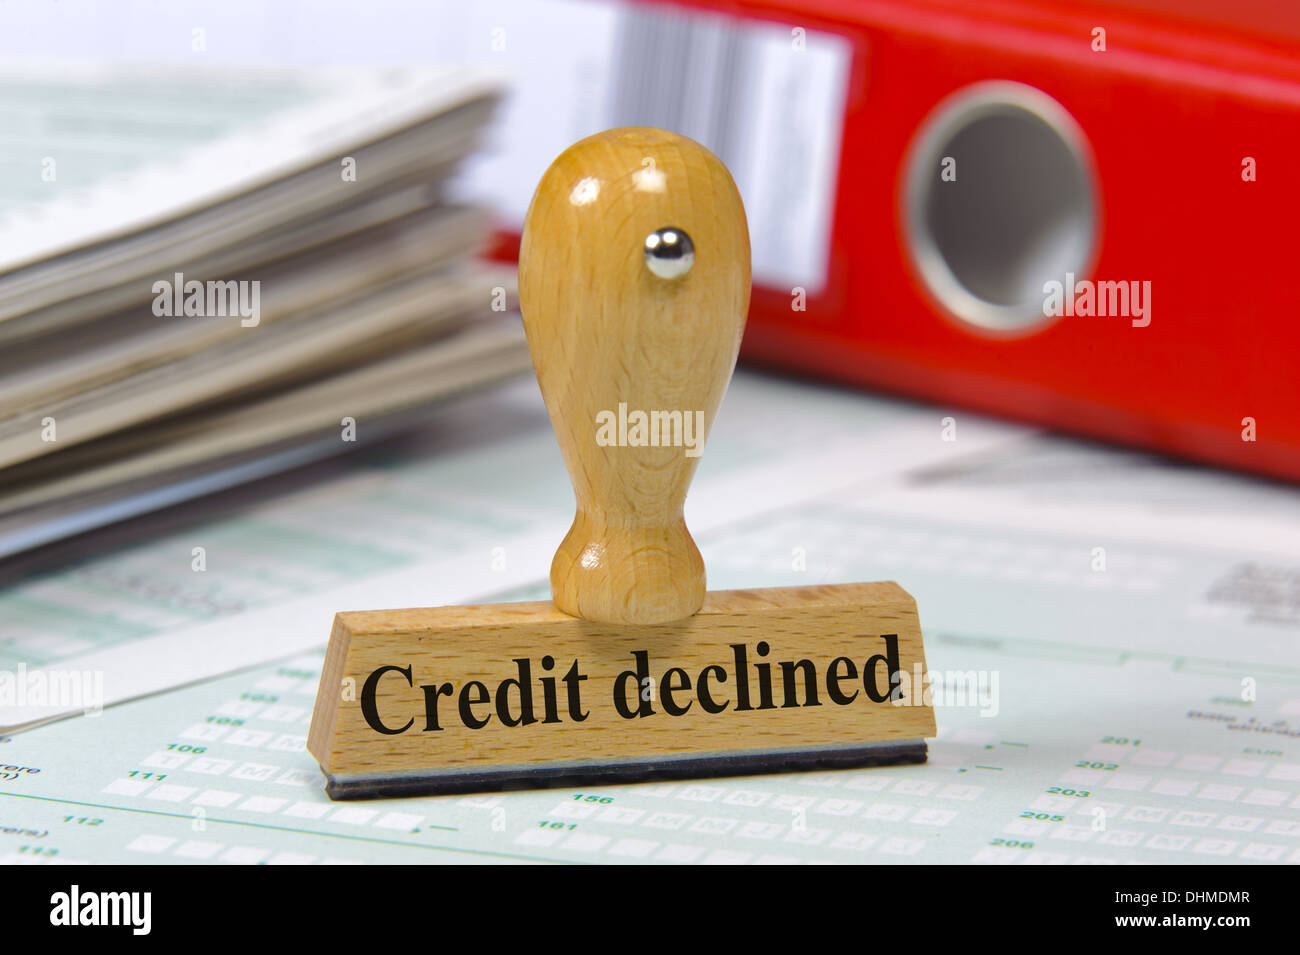 rubber stamp marked with credit declined - Stock Image